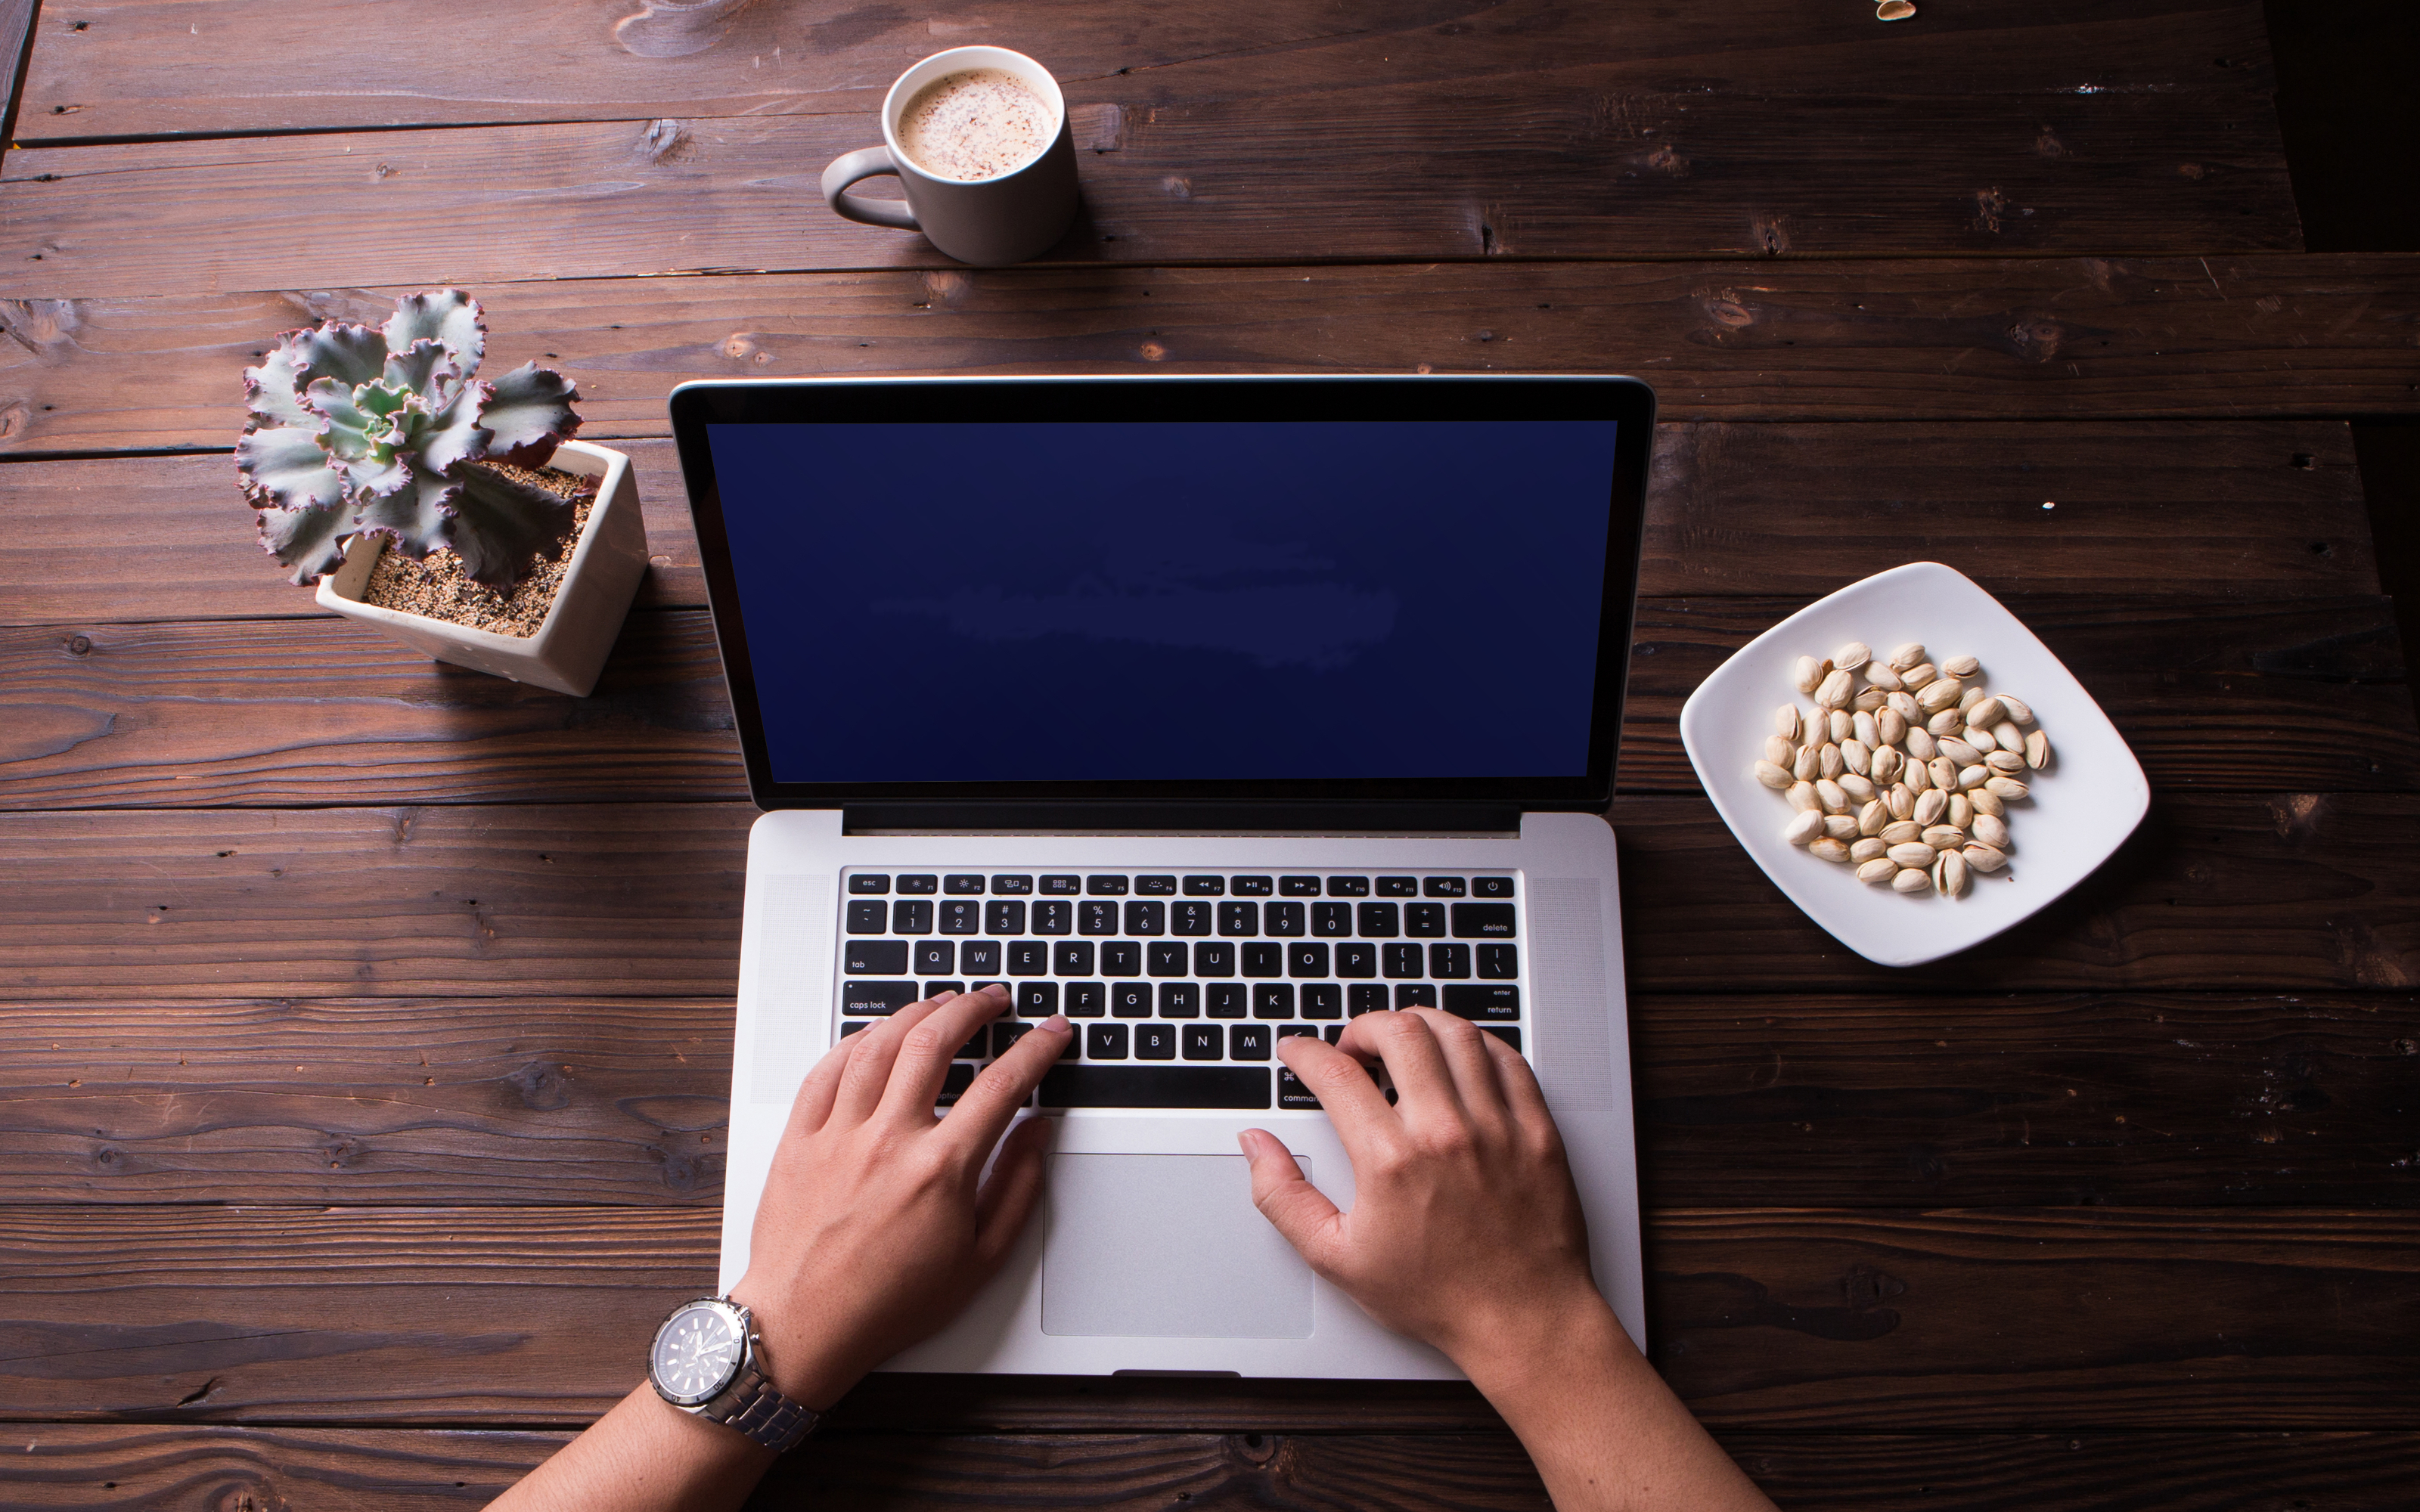 Online will writing on laptop